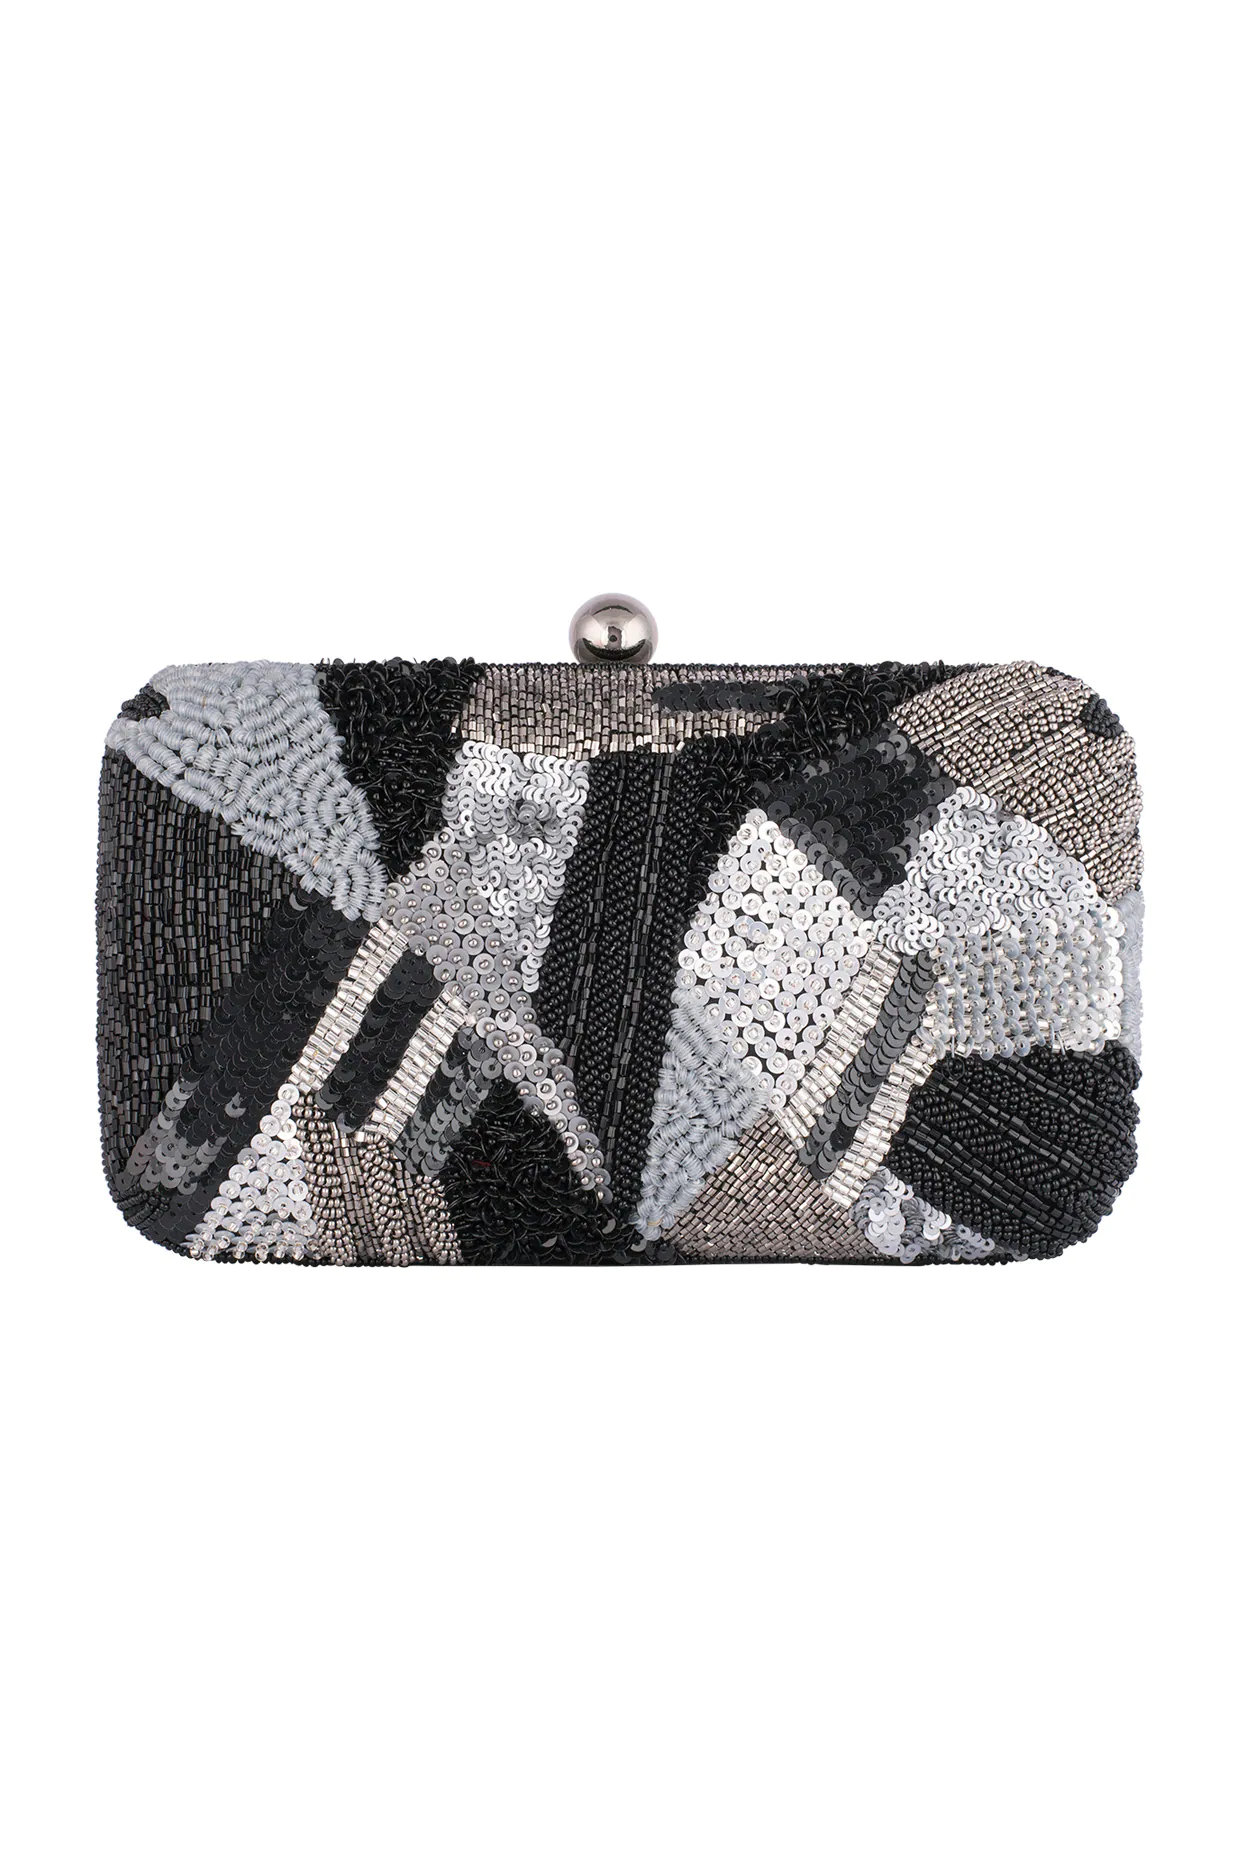 Black Geometrical Embroidered Clutch